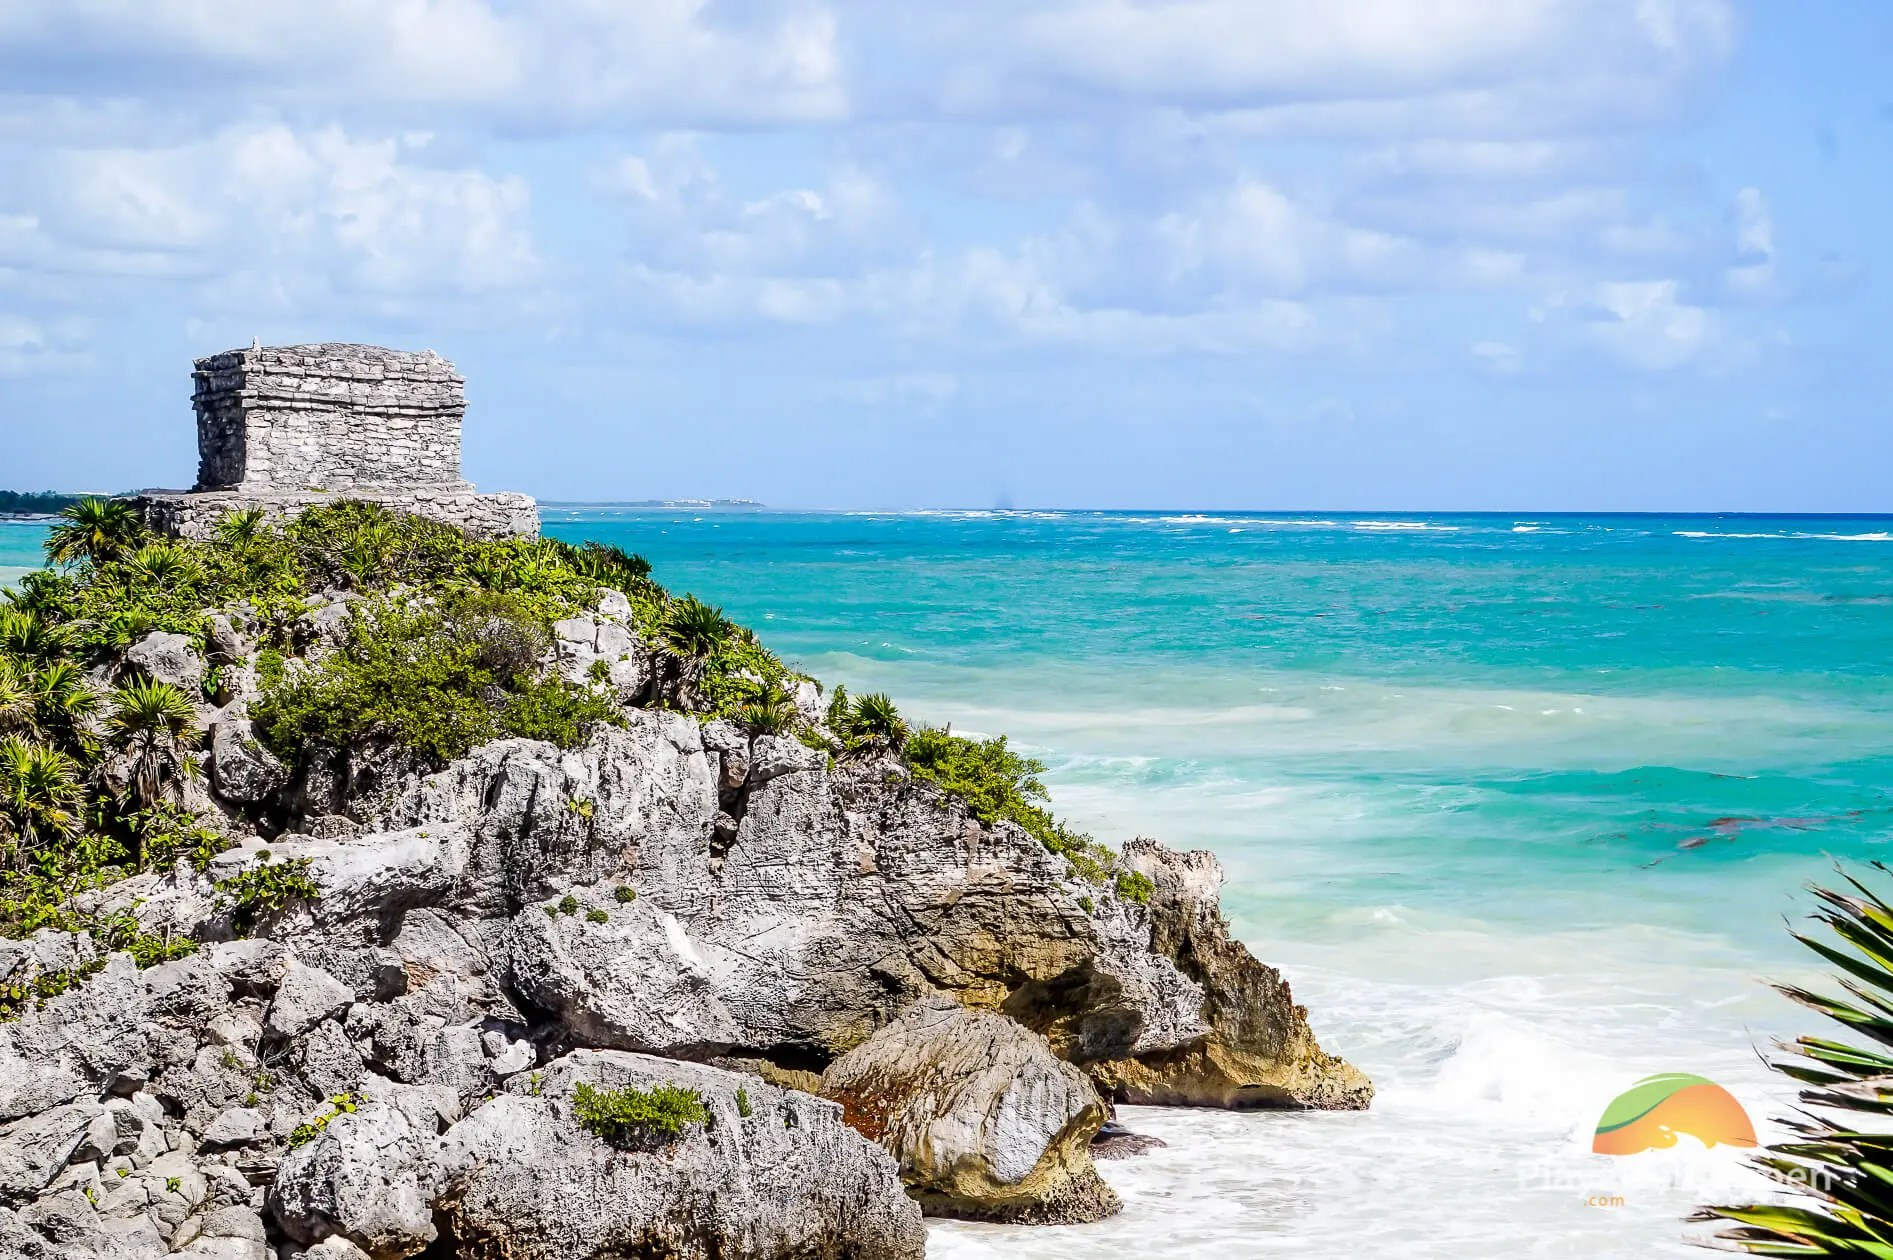 12 Things You Should Know About the Tulum Ruins